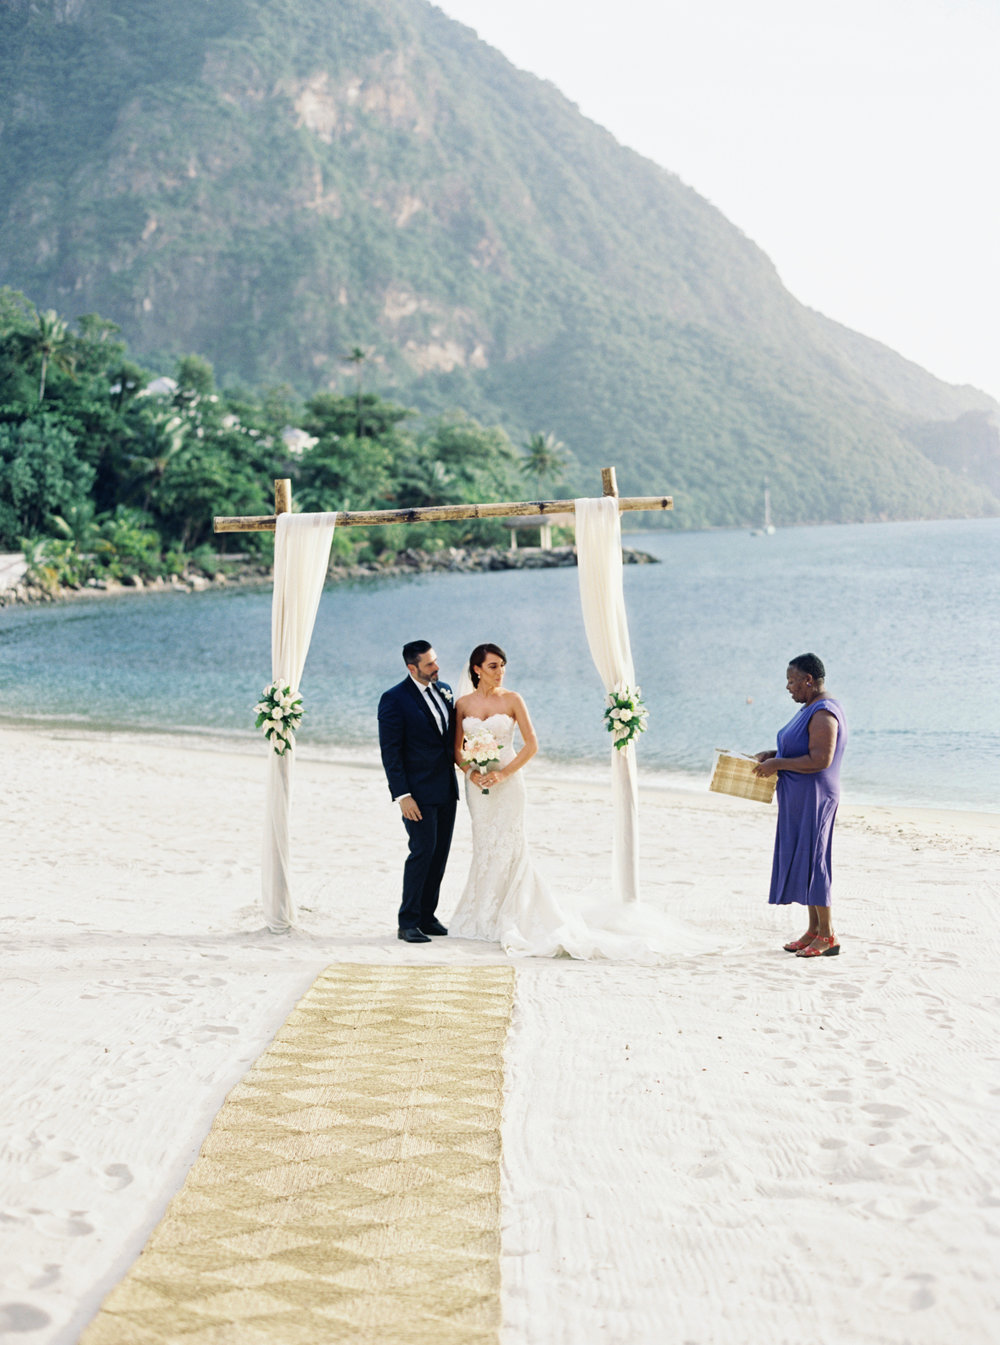 074Delmary's & Daniel : ELOPEMENT : ST. LUCIA : CARIBBEAN : PHOTO & VIDEO : DESTINATION : OUTLIVE CREATIVE : 2016 .jpg